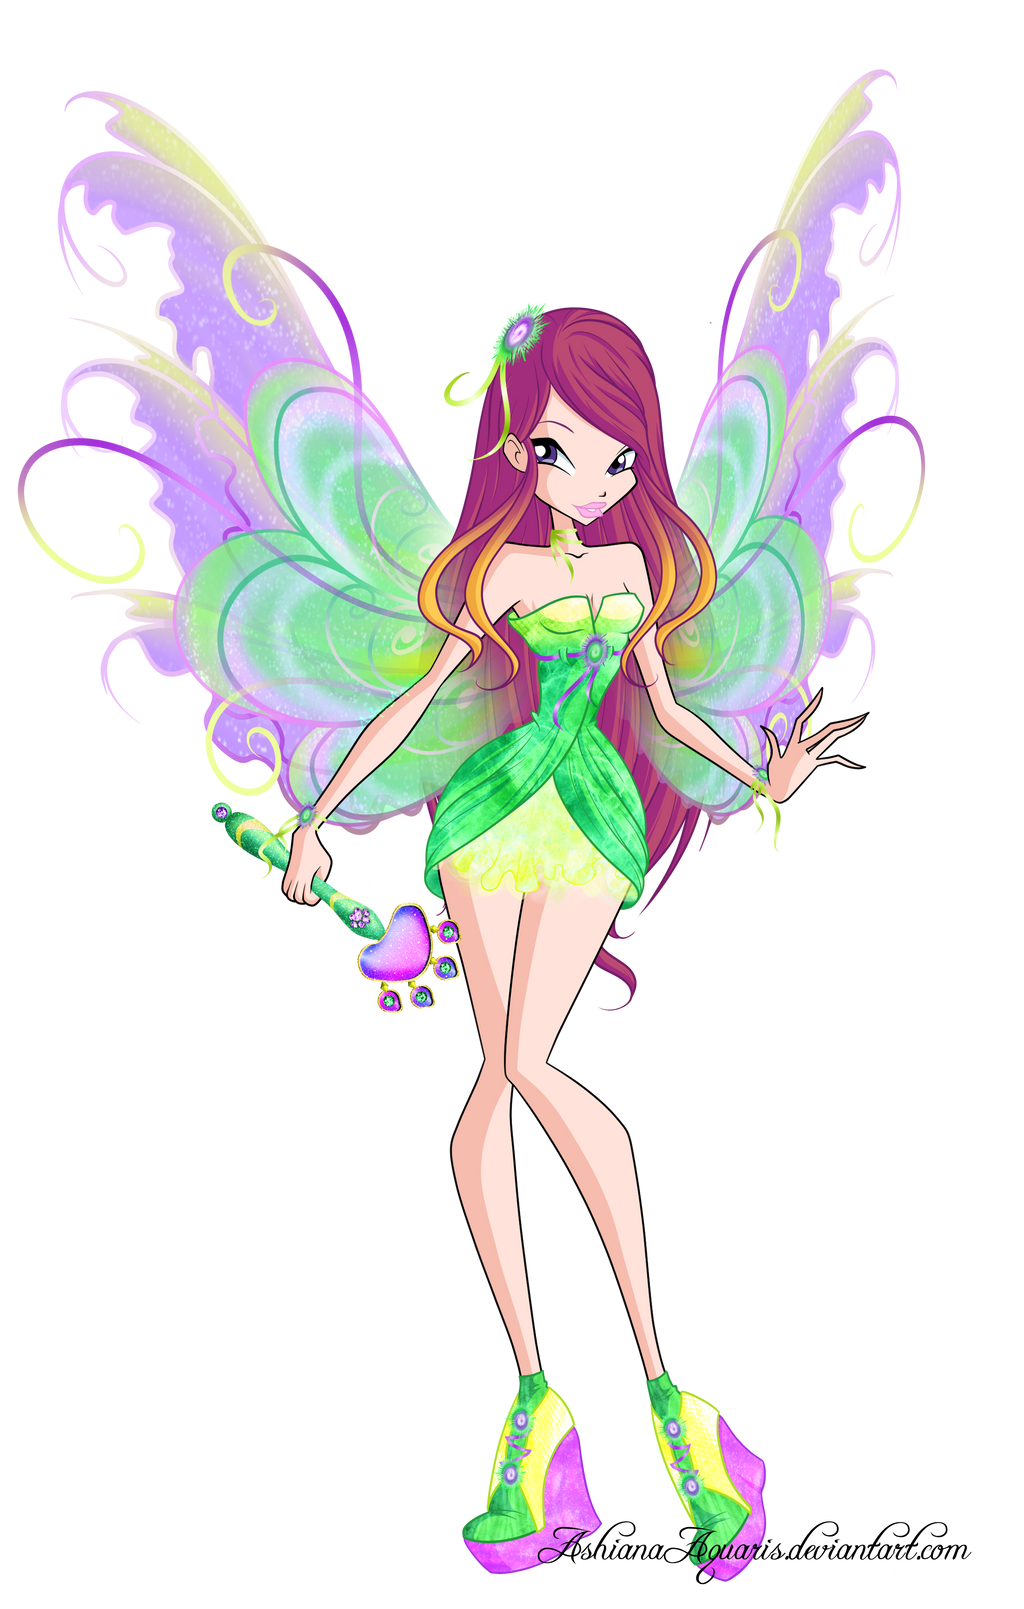 Winx 6 roxy mythix by gerganafen on deviantart - Winx magic bloomix ...